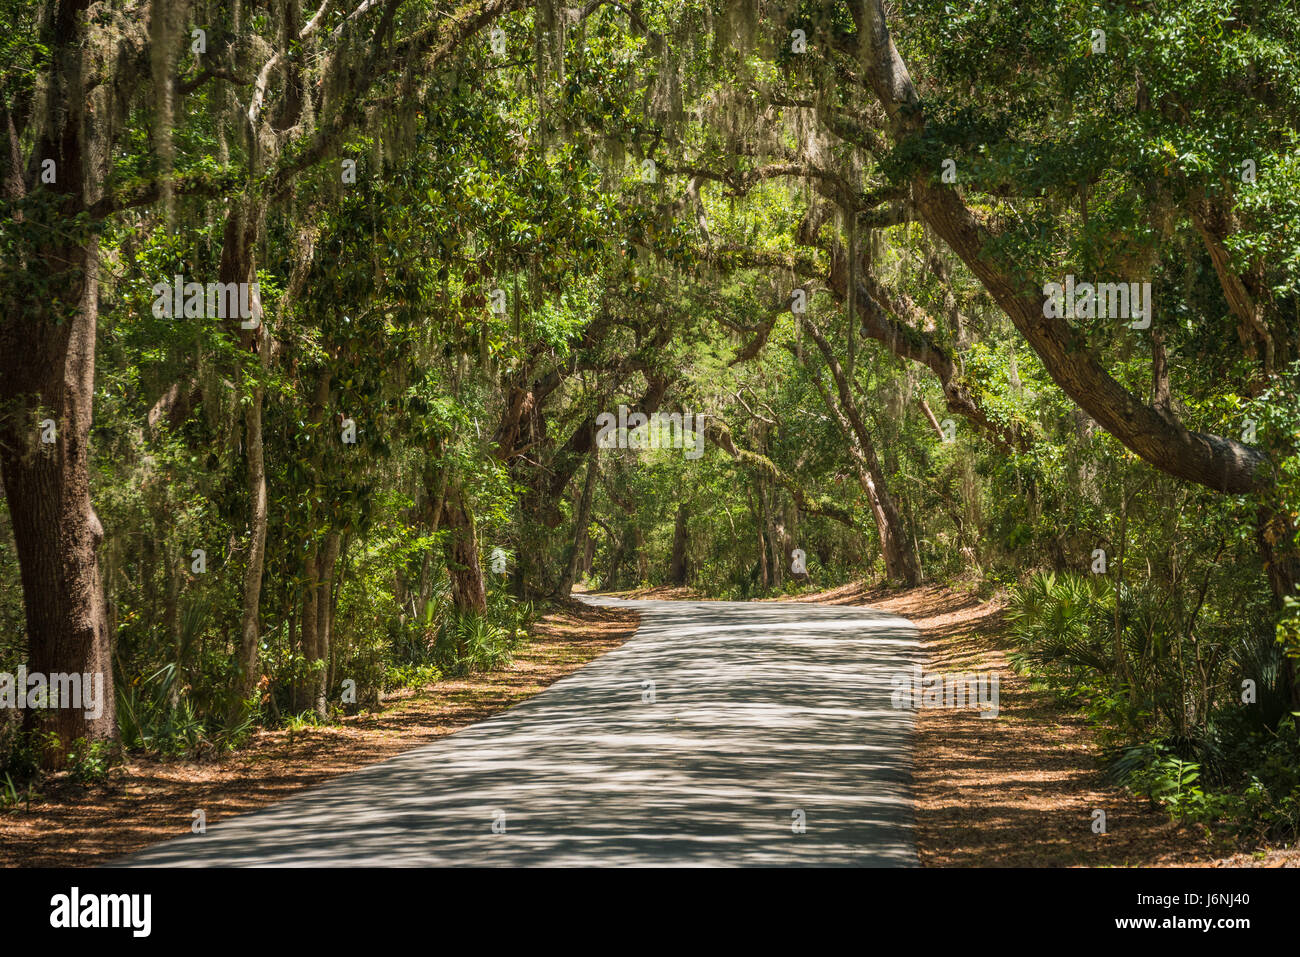 Florida oaks and Spanish moss provide a canopy for the tree-covered road to Fort Clinch on Amelia Island in Fernandina - Stock Image